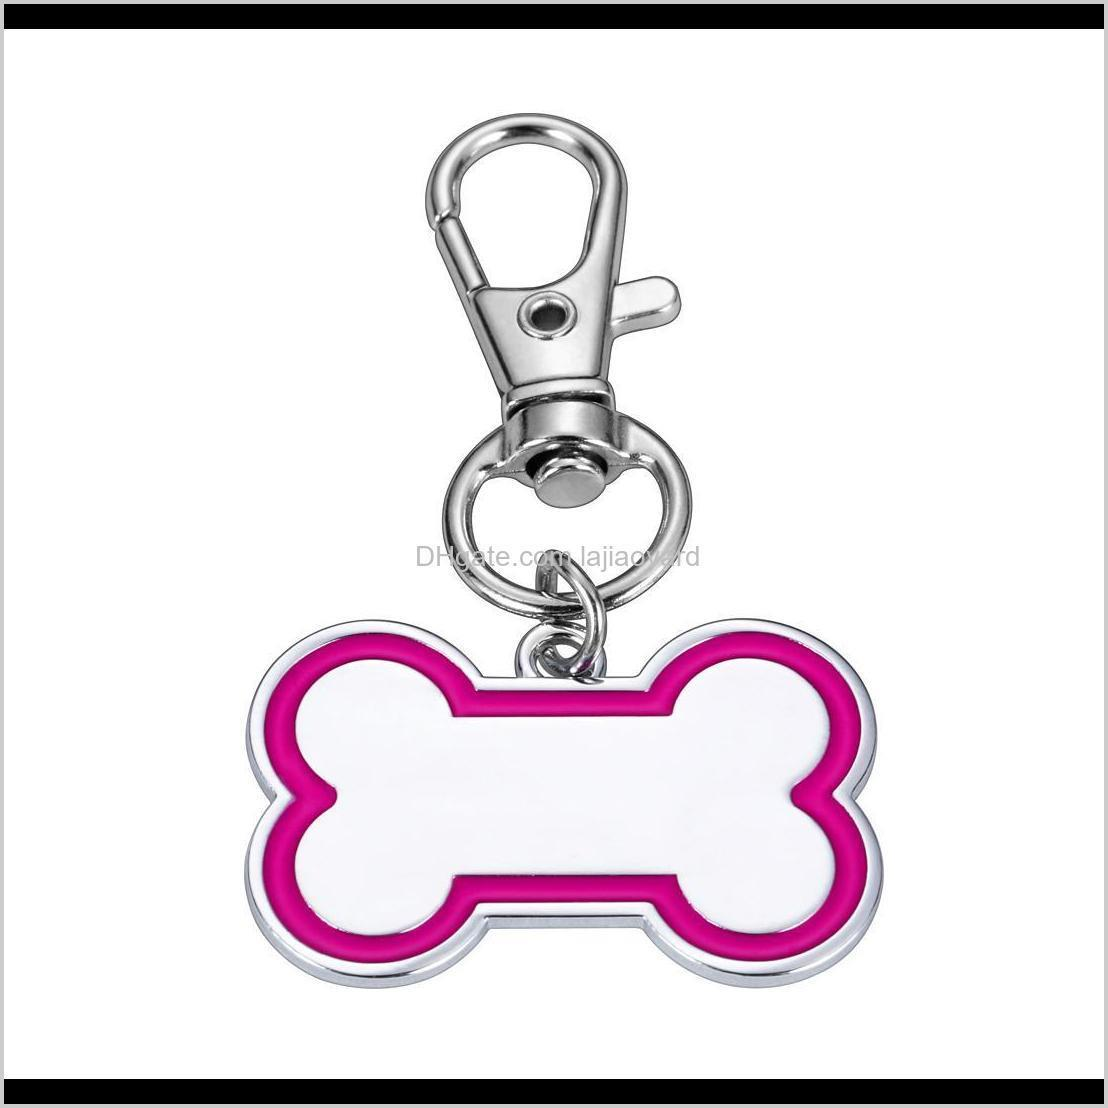 personalized dog collars dog name id tags gifts for dog lovers pet collar tags for engraved pet tag new q wmtotr